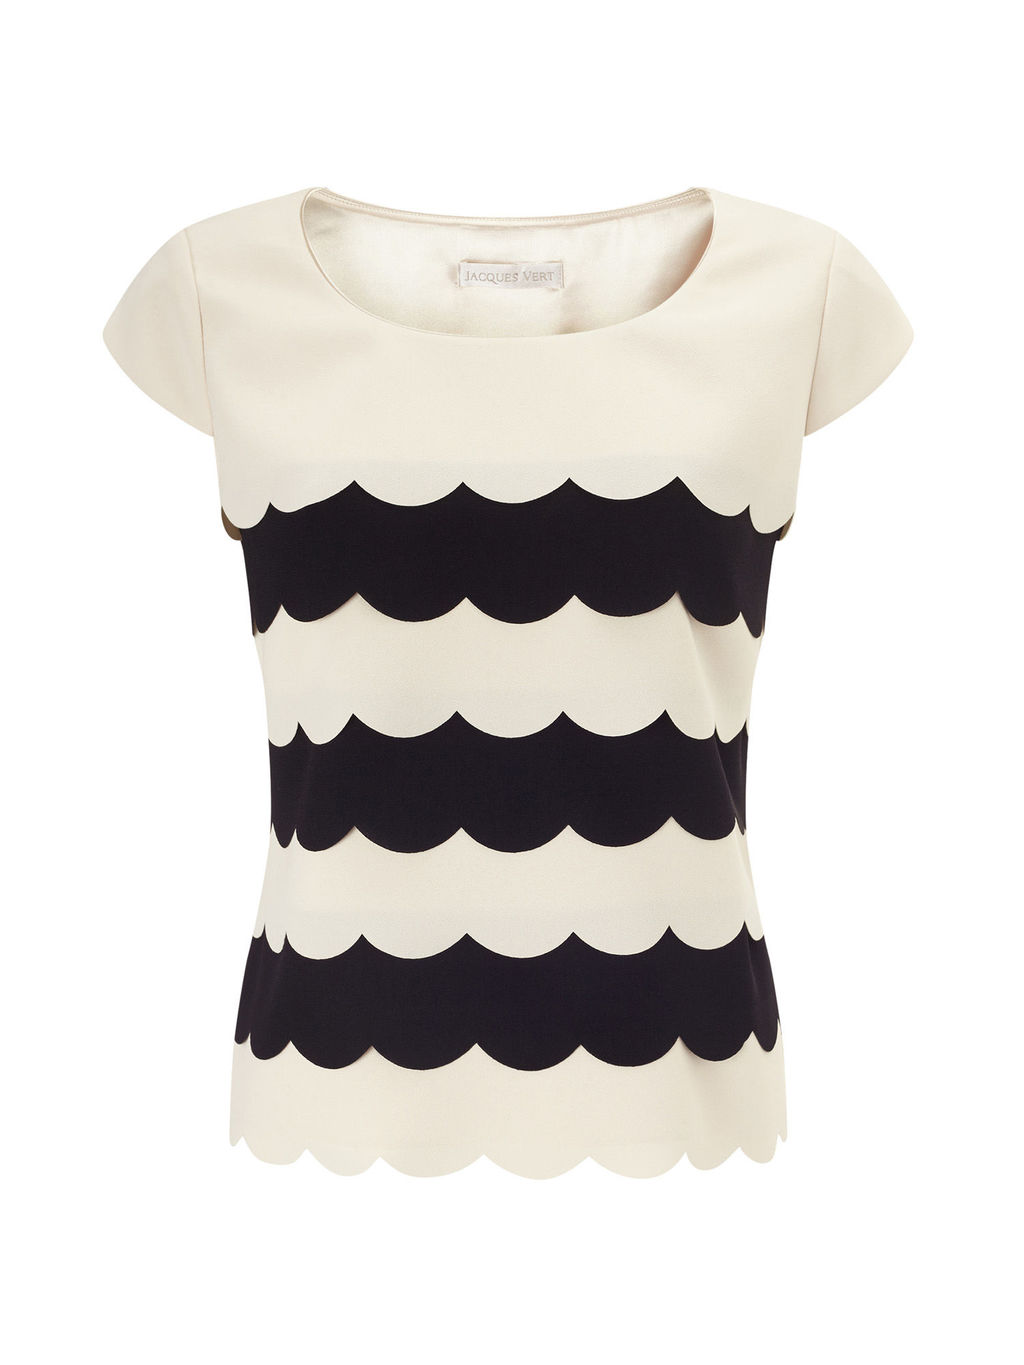 Scallop Layer Top, Cream/Black - neckline: round neck; predominant colour: ivory/cream; secondary colour: black; occasions: casual; length: standard; style: top; fibres: polyester/polyamide - 100%; fit: body skimming; sleeve length: short sleeve; sleeve style: standard; pattern type: fabric; pattern: patterned/print; texture group: woven light midweight; multicoloured: multicoloured; season: s/s 2016; wardrobe: highlight